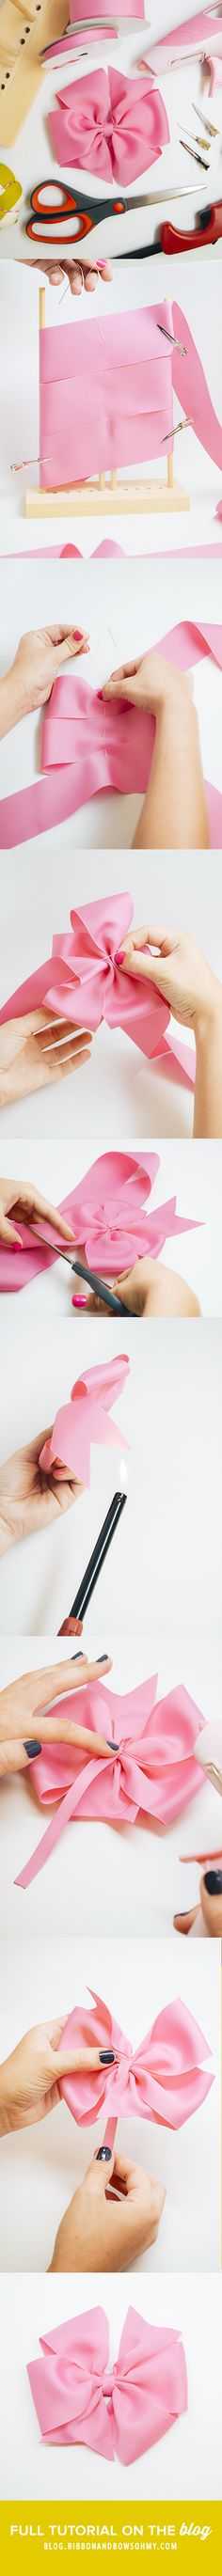 Tutorial para hacer un Pinwheel Bow ¡¡ muy visual¡ Ribbon Art, Diy Ribbon, Ribbon Crafts, Ribbon Bows, Ribbons, Ribbon Flower, Making Hair Bows, Diy Hair Bows, Diy Bow